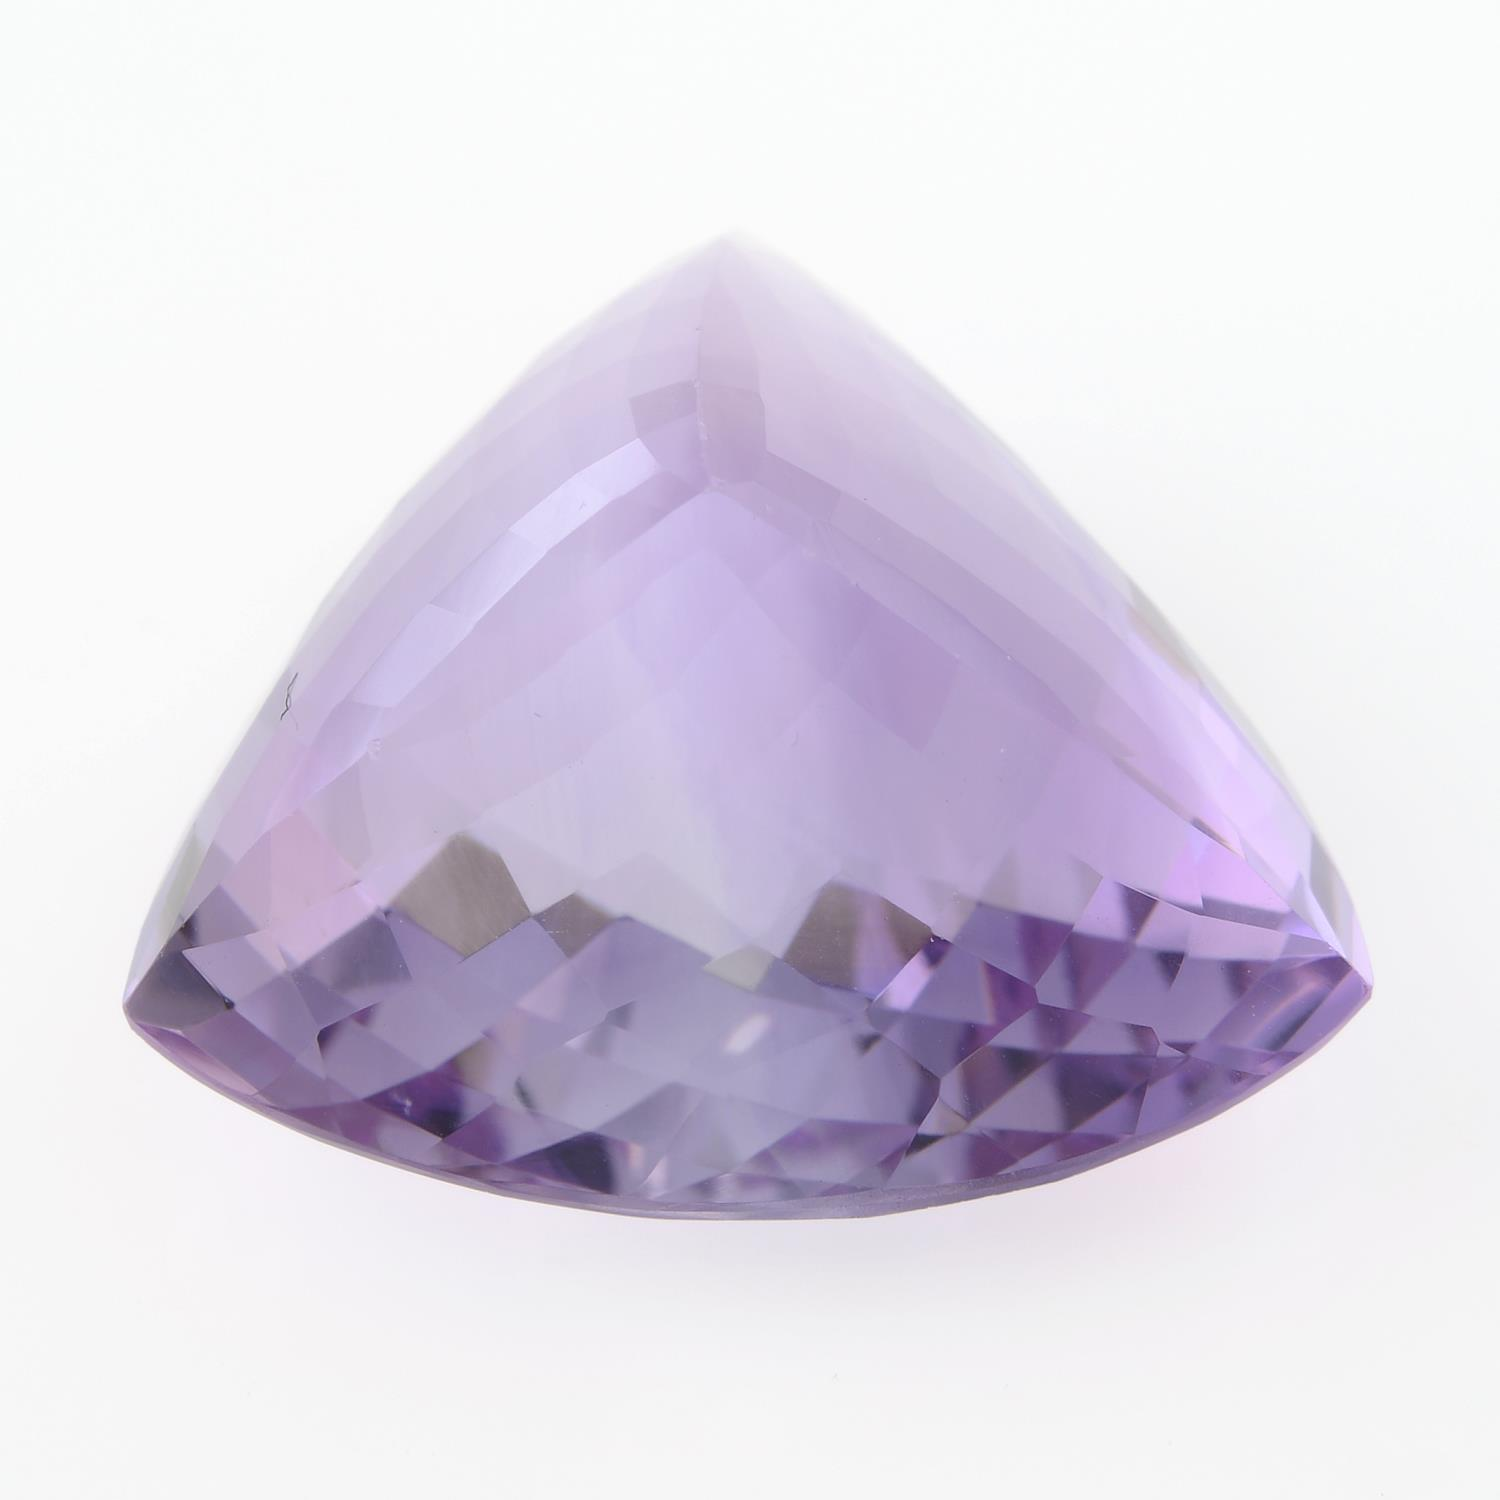 A triangular shape amethyst, weighing 28.47ct. - Image 2 of 2